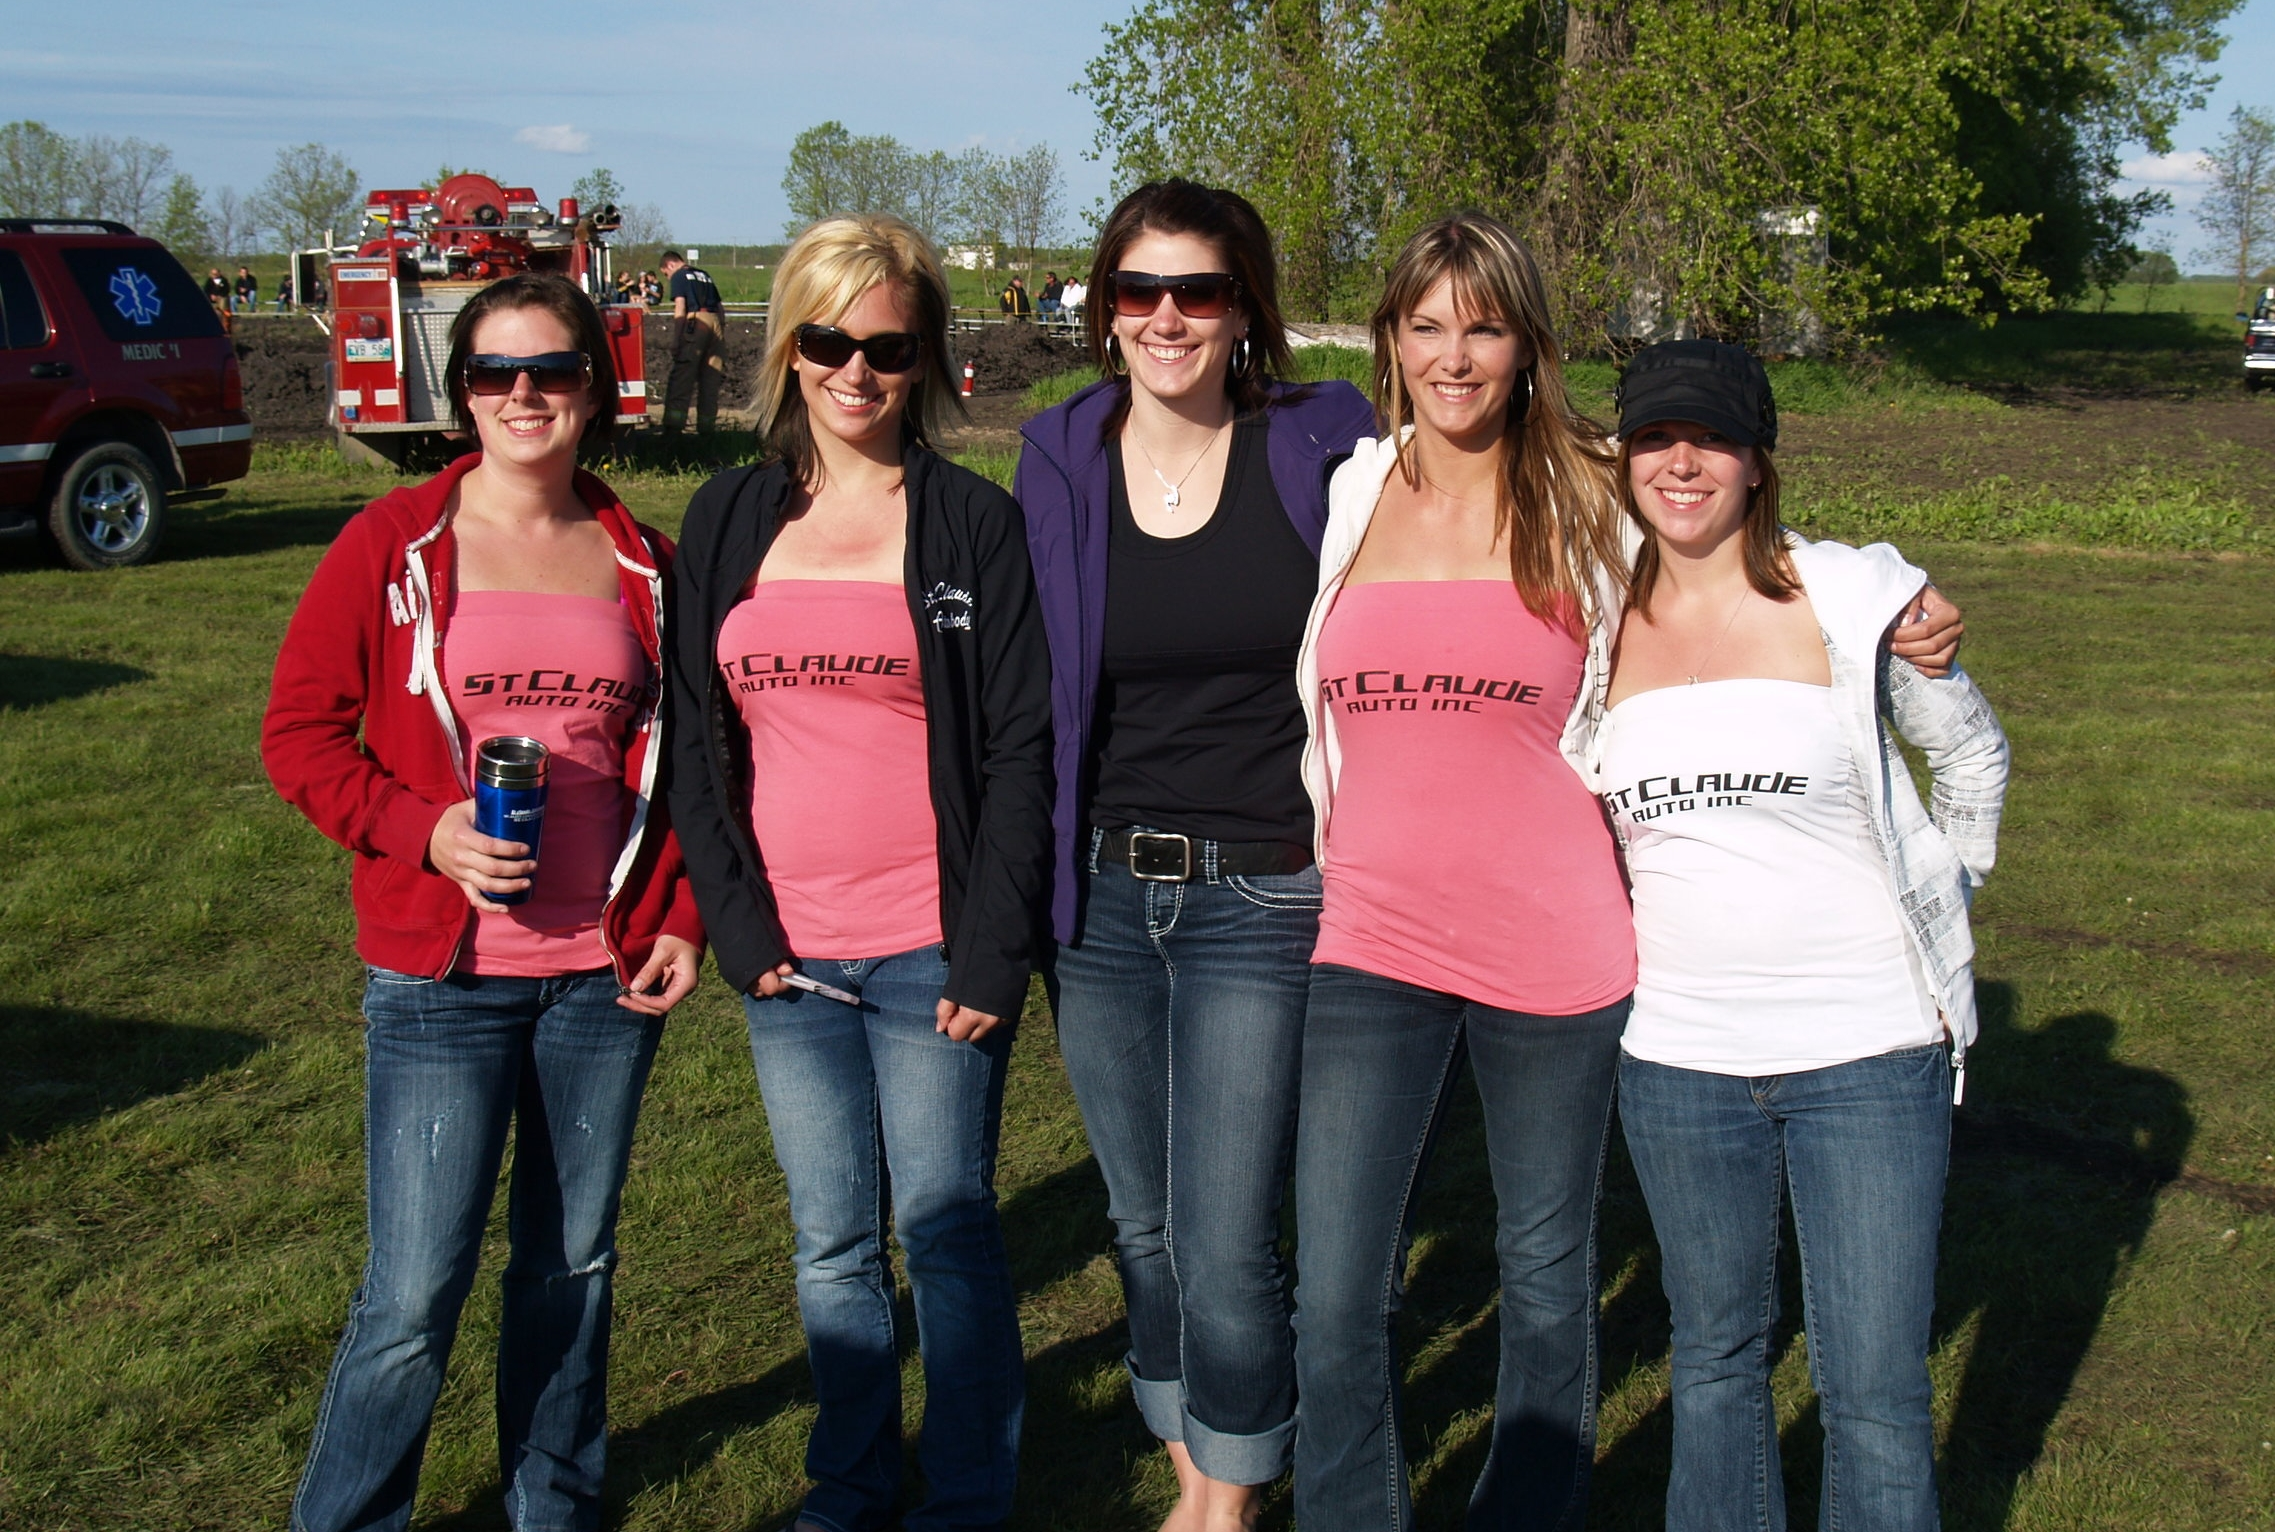 A few of the event volunteers at the 2011 Demolition Derby